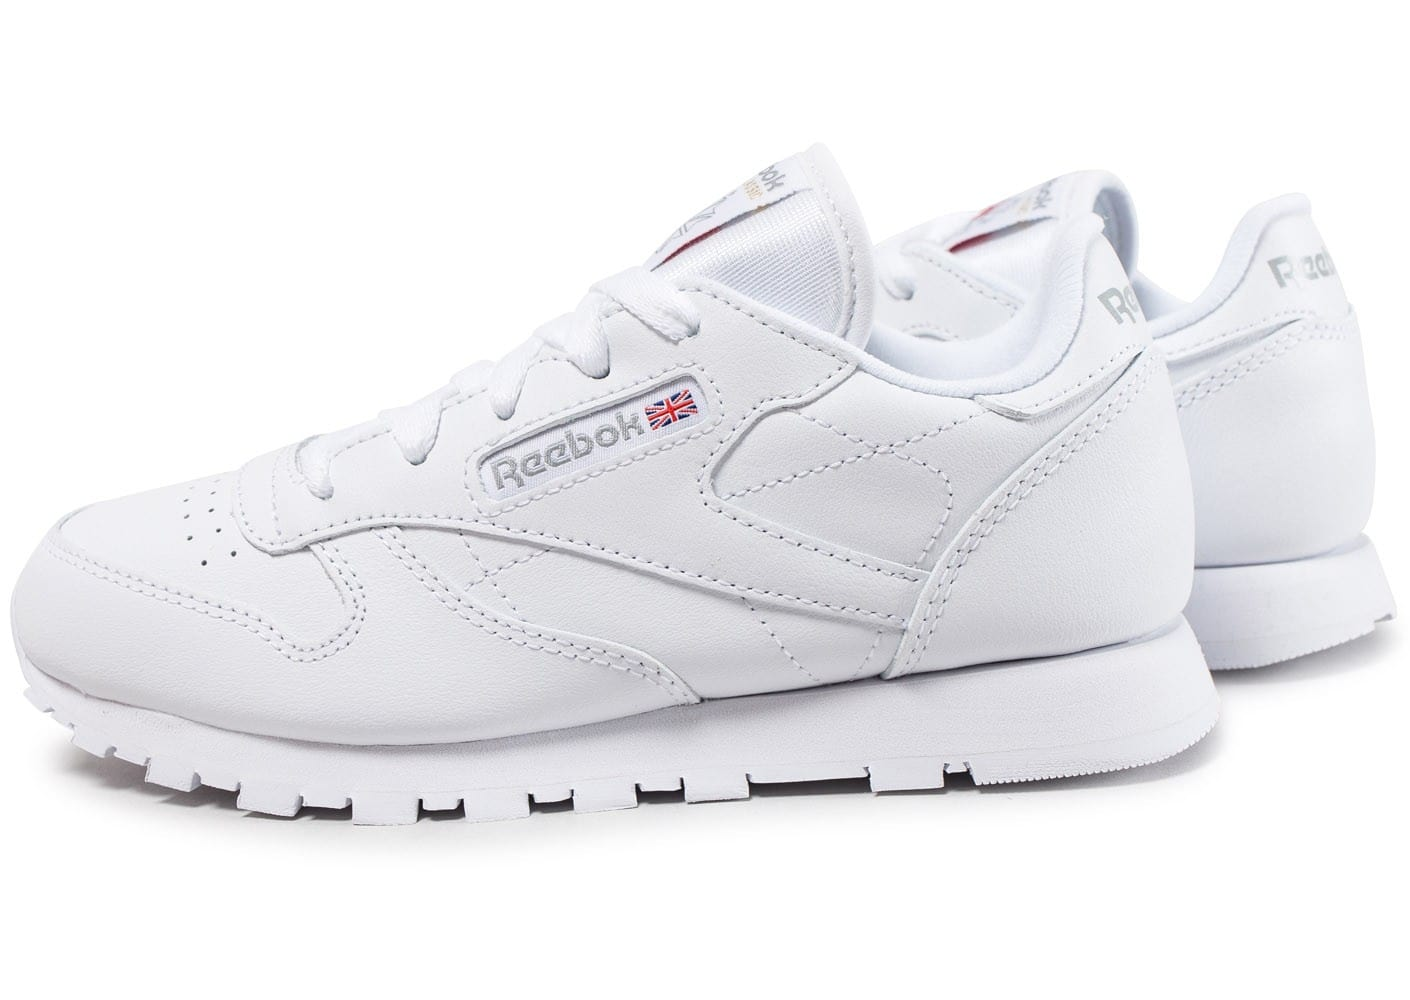 reebok classic enfant blanche chaussures enfant chausport. Black Bedroom Furniture Sets. Home Design Ideas